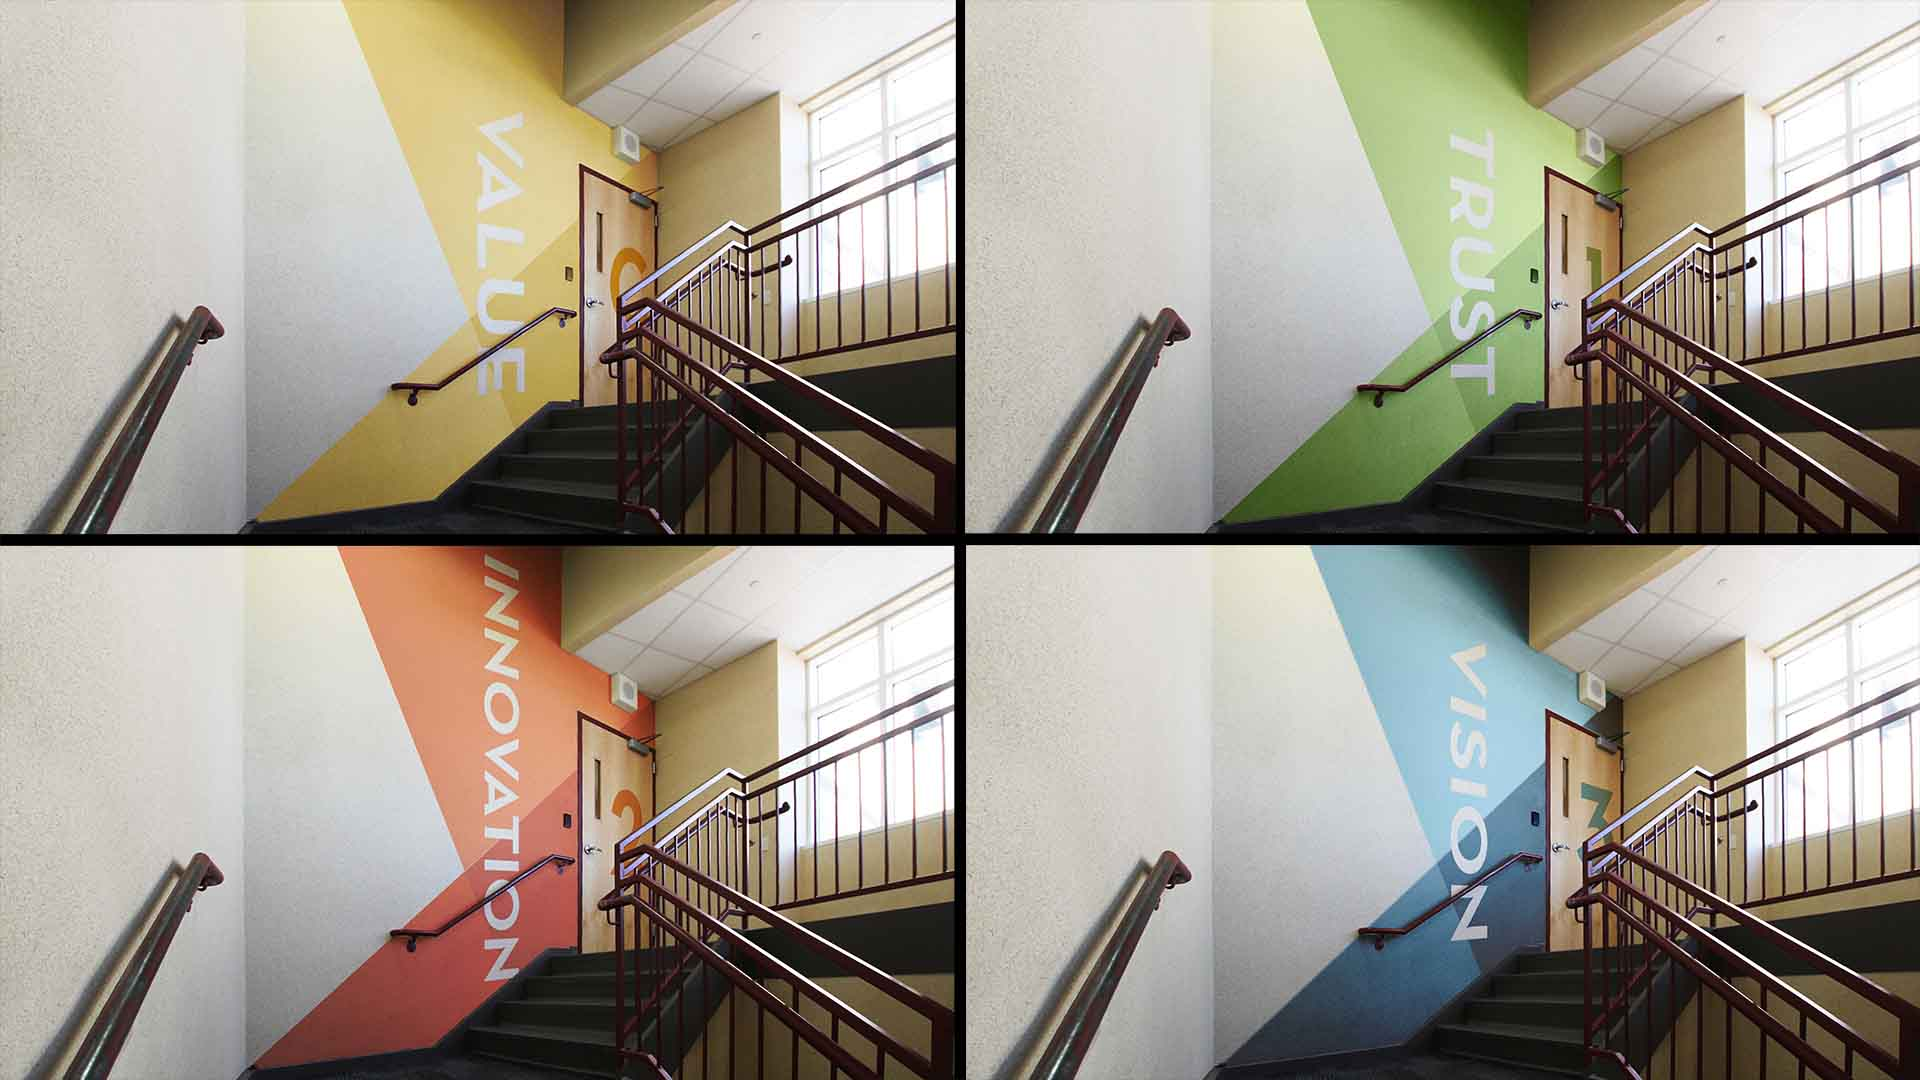 Custom wall graphics in stairwells